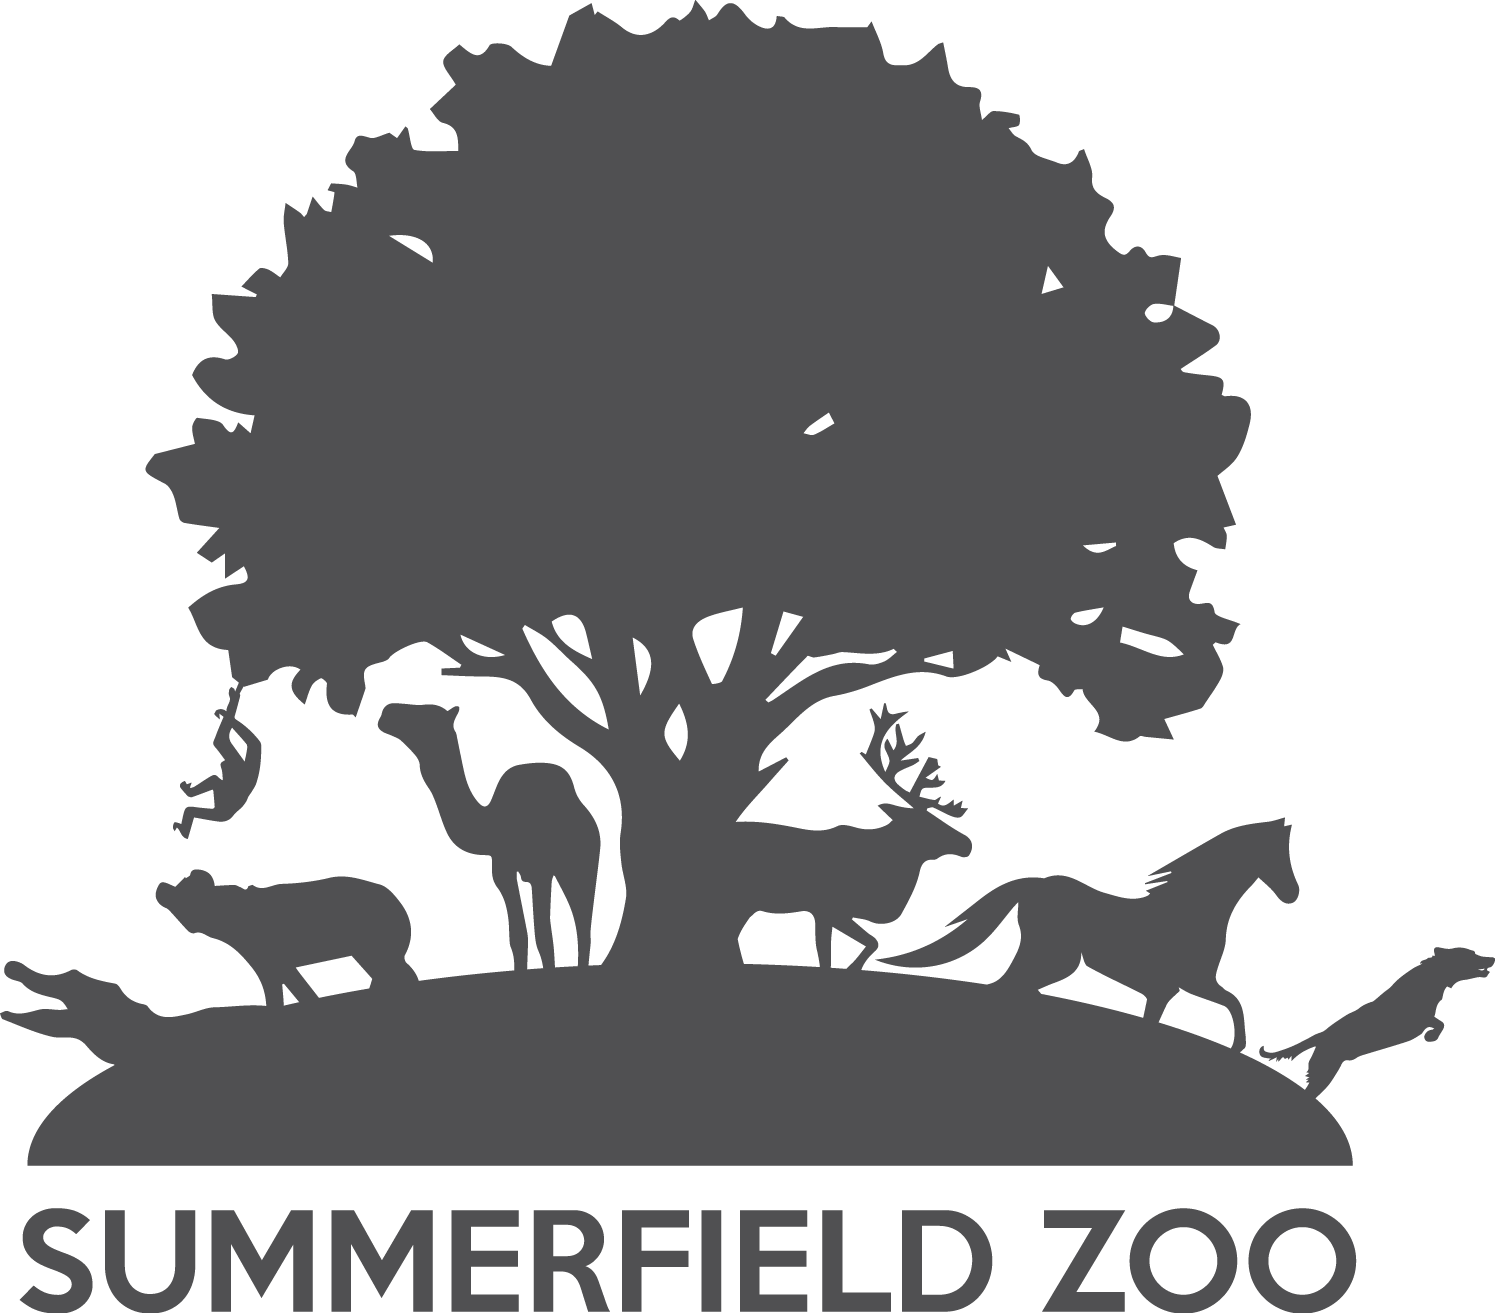 Summerfield_Zoo_Logo_Gray.png